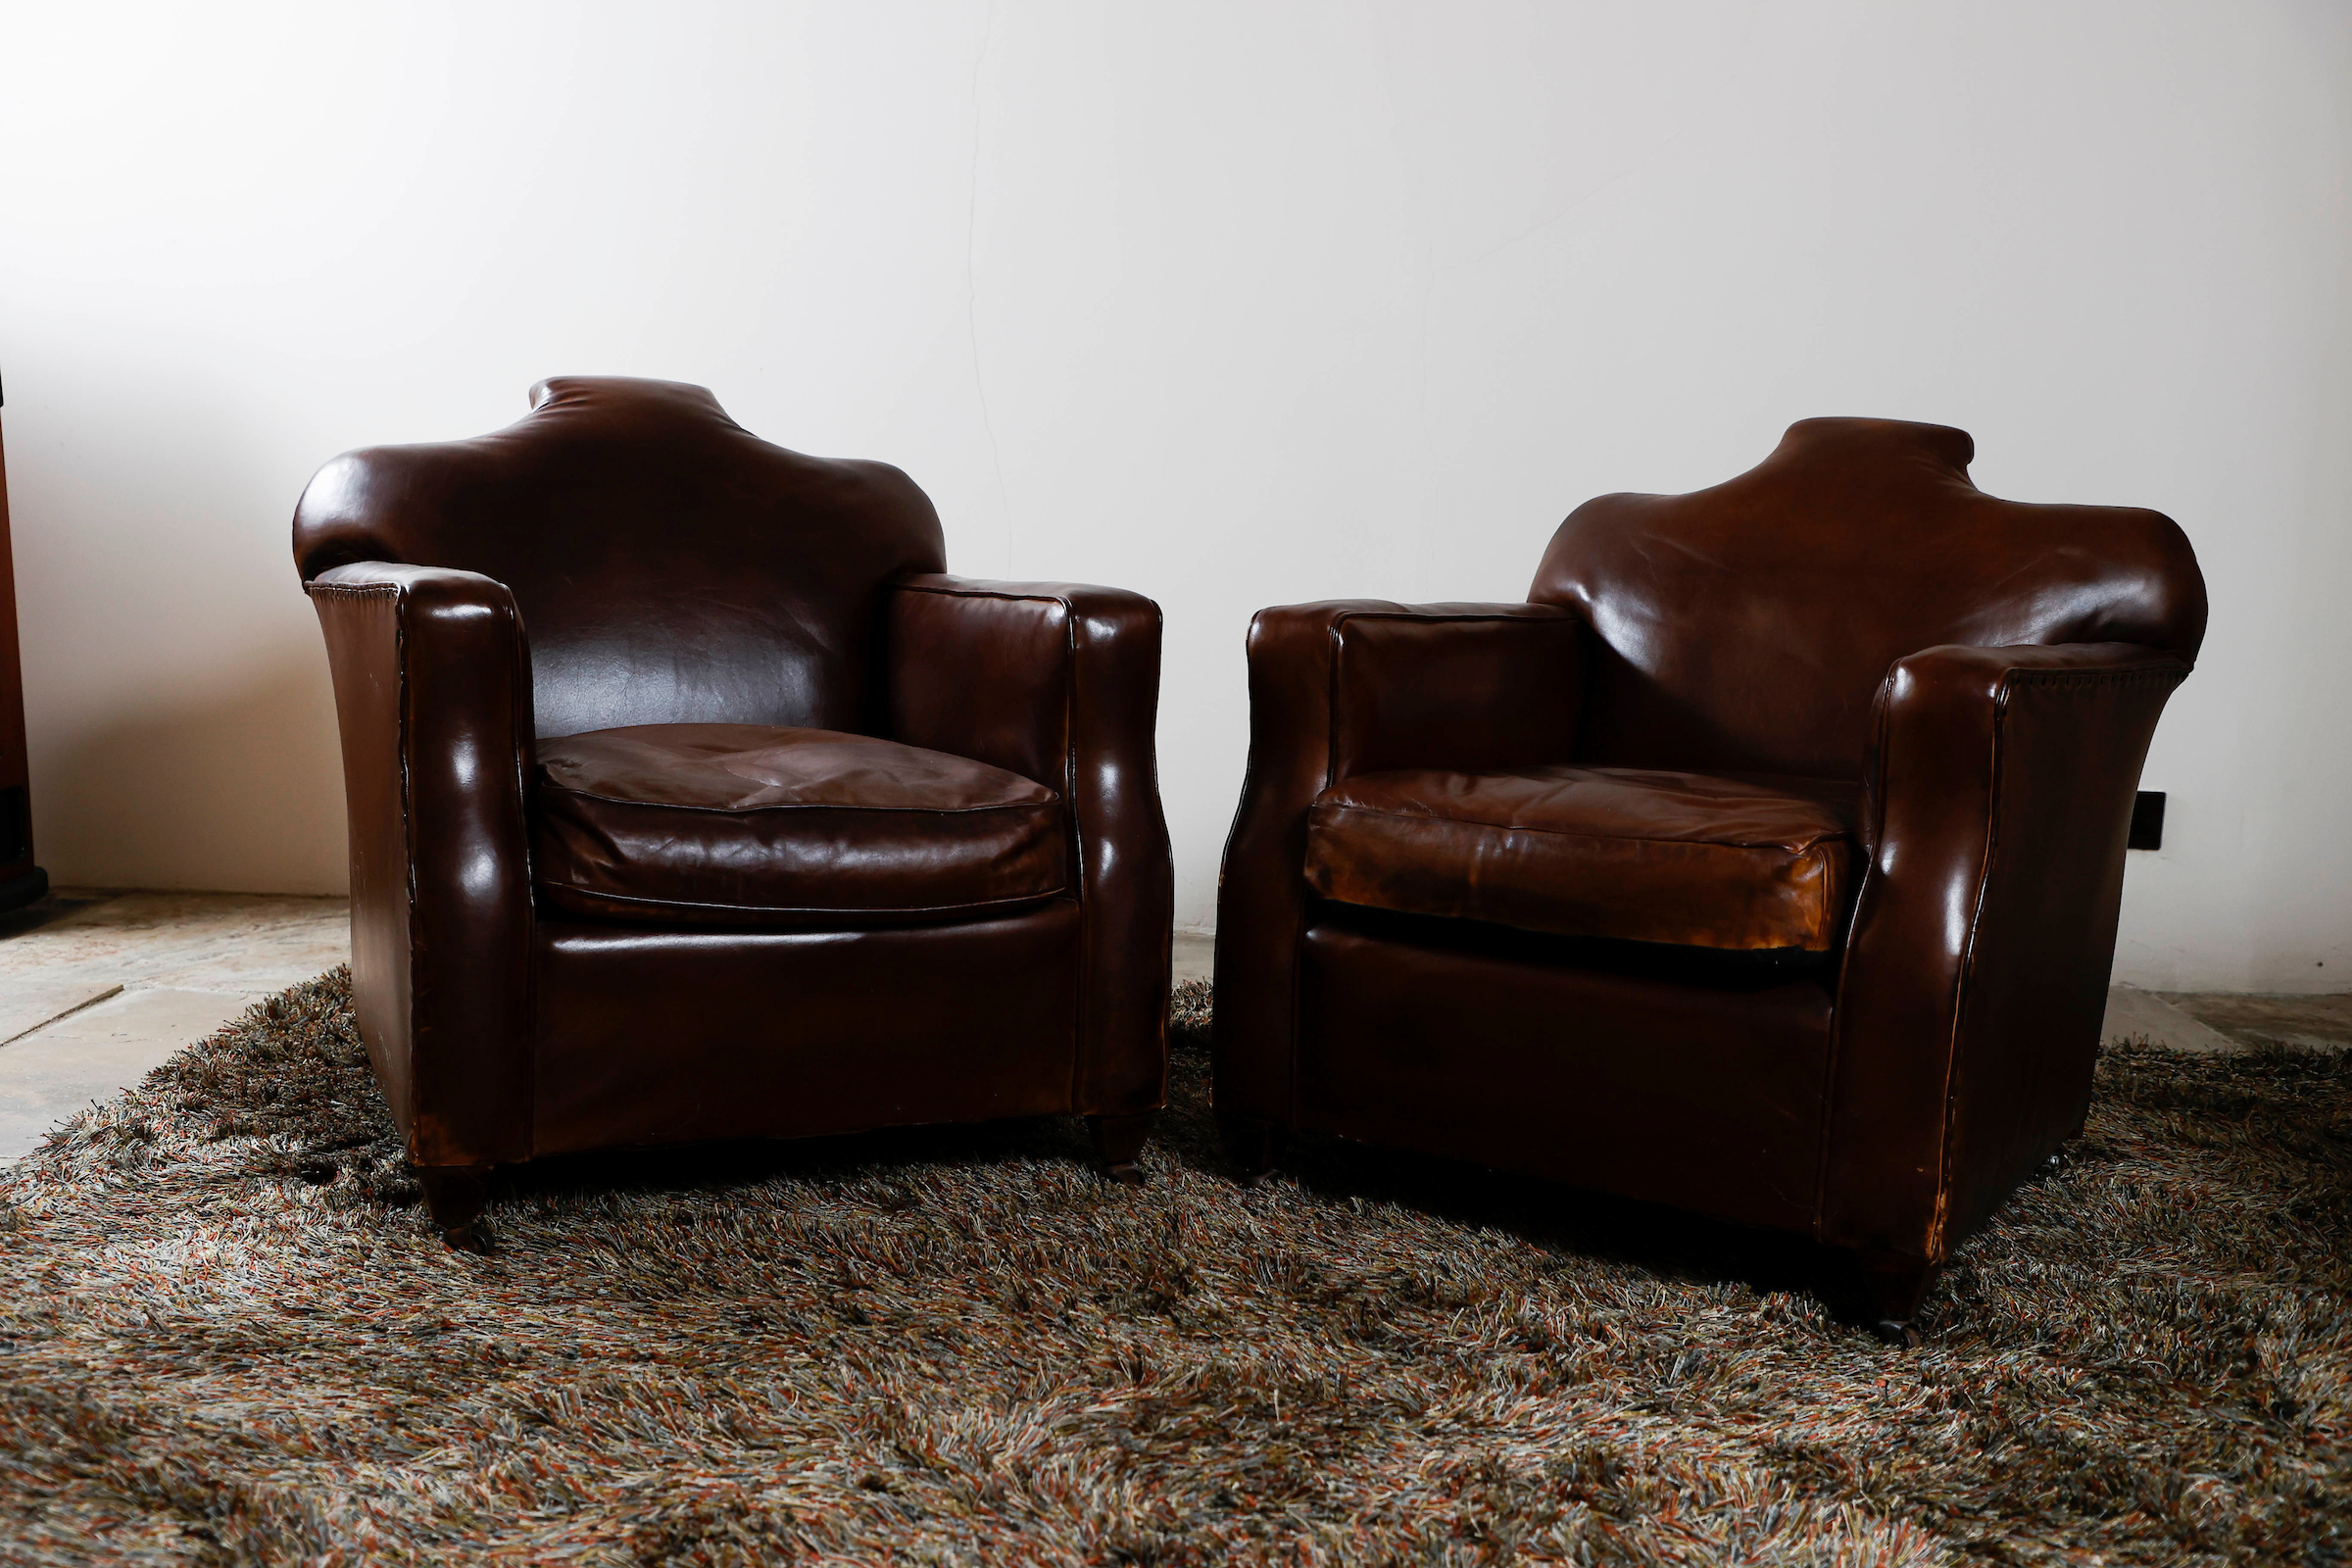 COOL PAIR OF EARLY 20th CENTURY LEATHER ARMCHAIRS